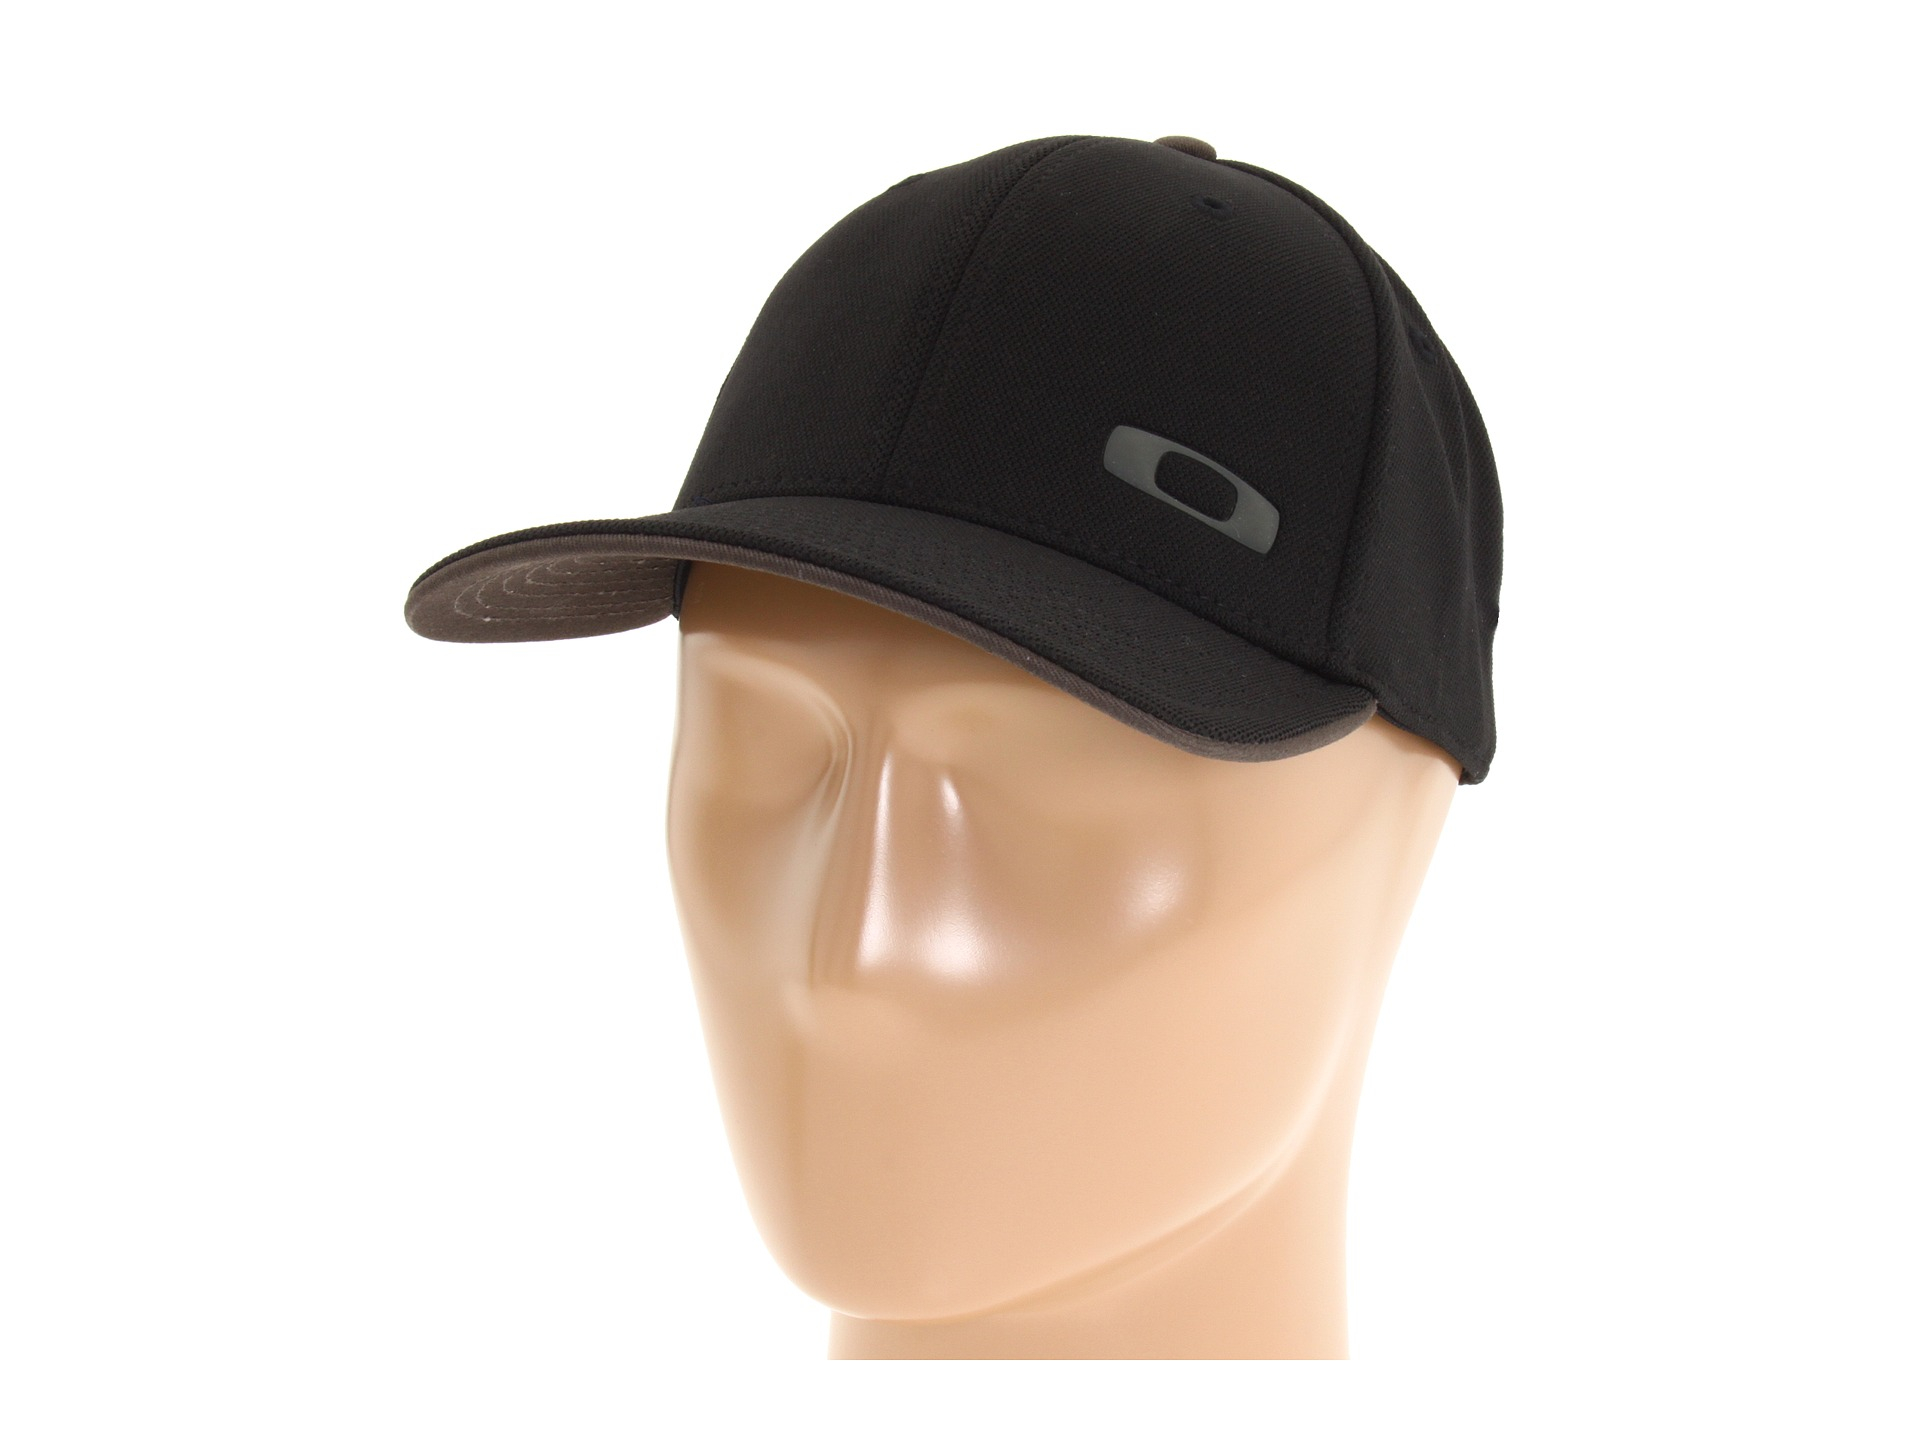 65092a076a7 ... discount code for lyst oakley silicon o cap 30 in black for men 7b31c  006ab